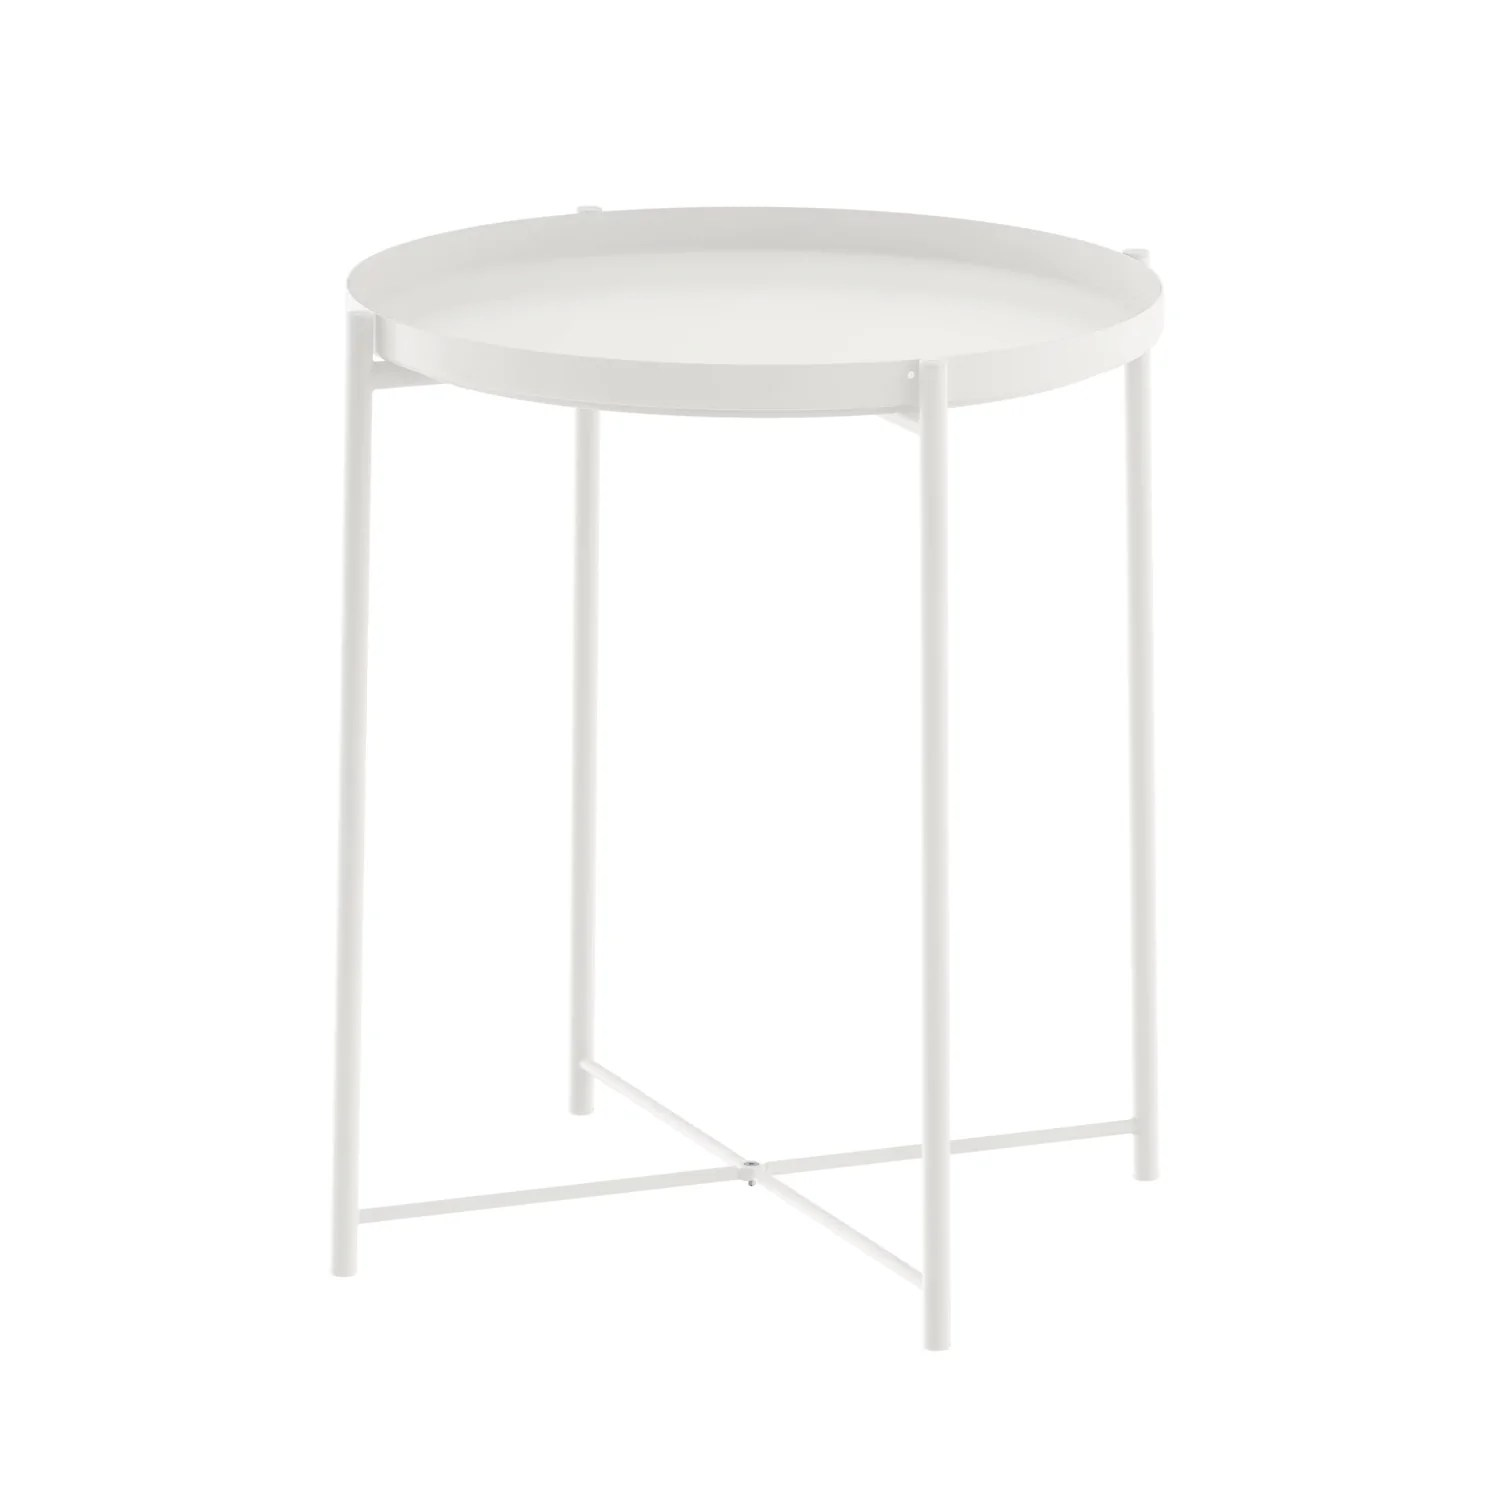 Ikea Front Gladom Tray Table White